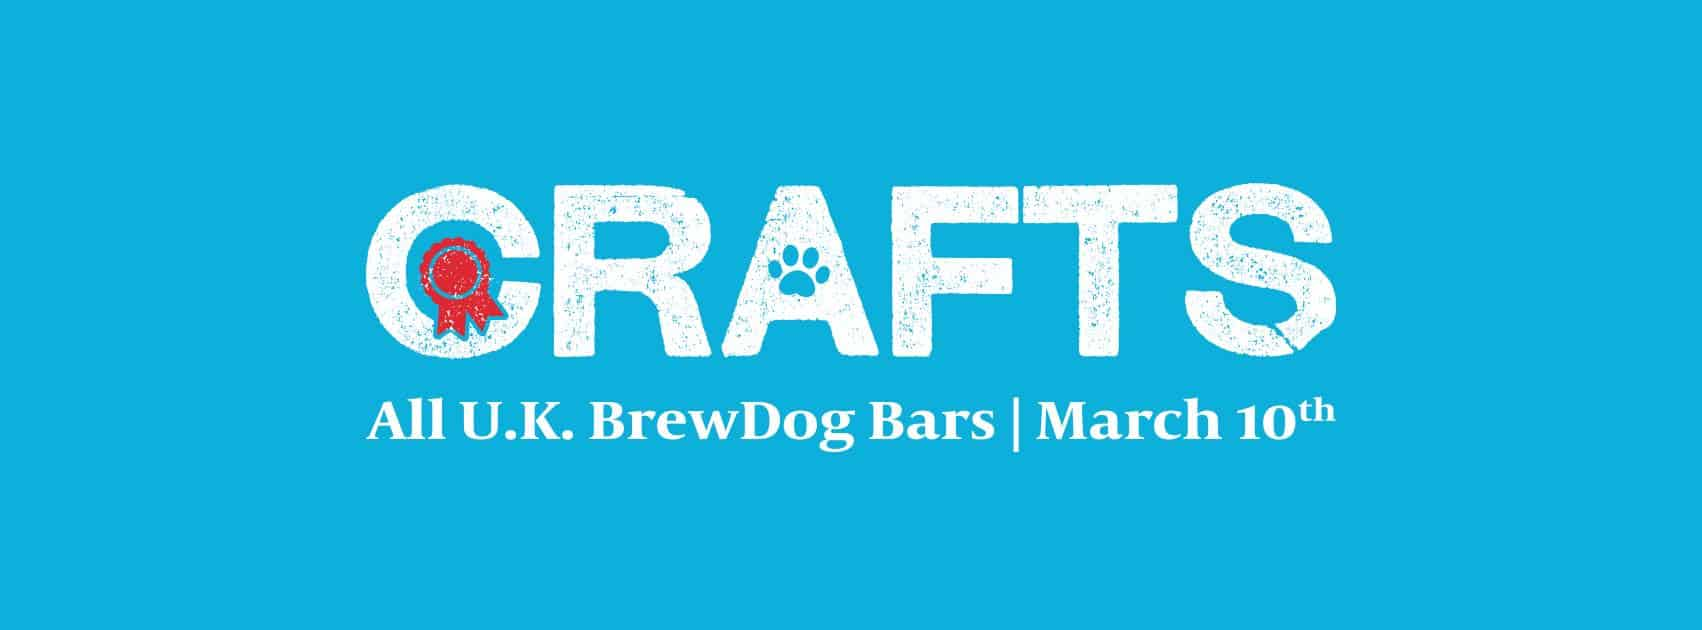 Brewdog's The Crafts The World's Beeriest Dog Show 10th March